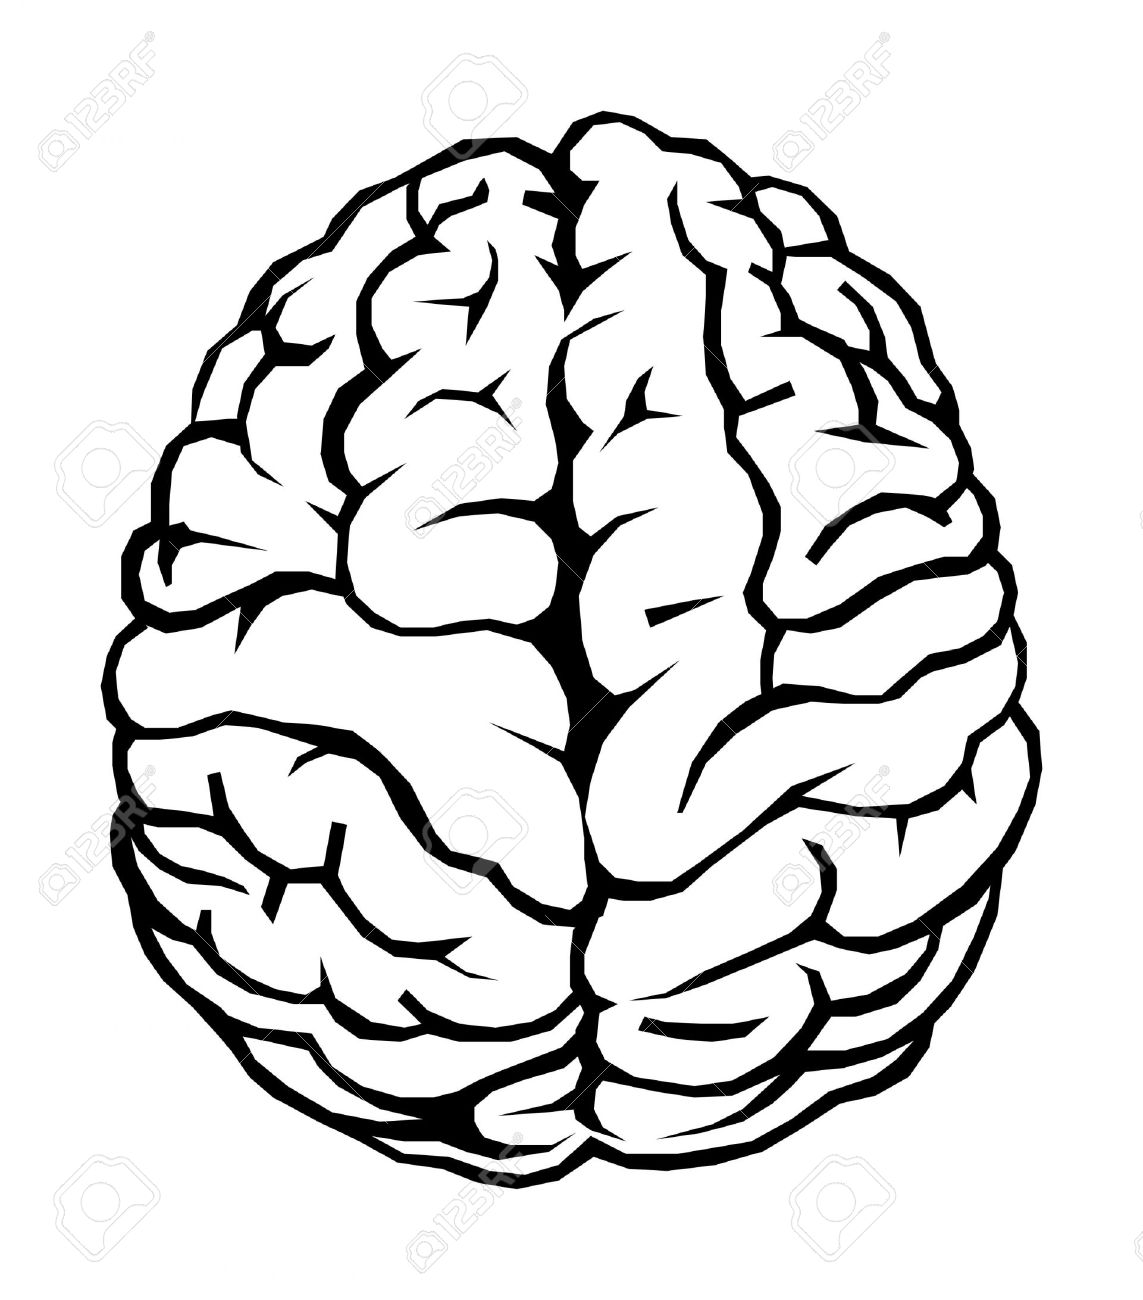 human brain drawing at getdrawings com free for personal use human rh getdrawings com brain thinking clipart free free brain clipart images